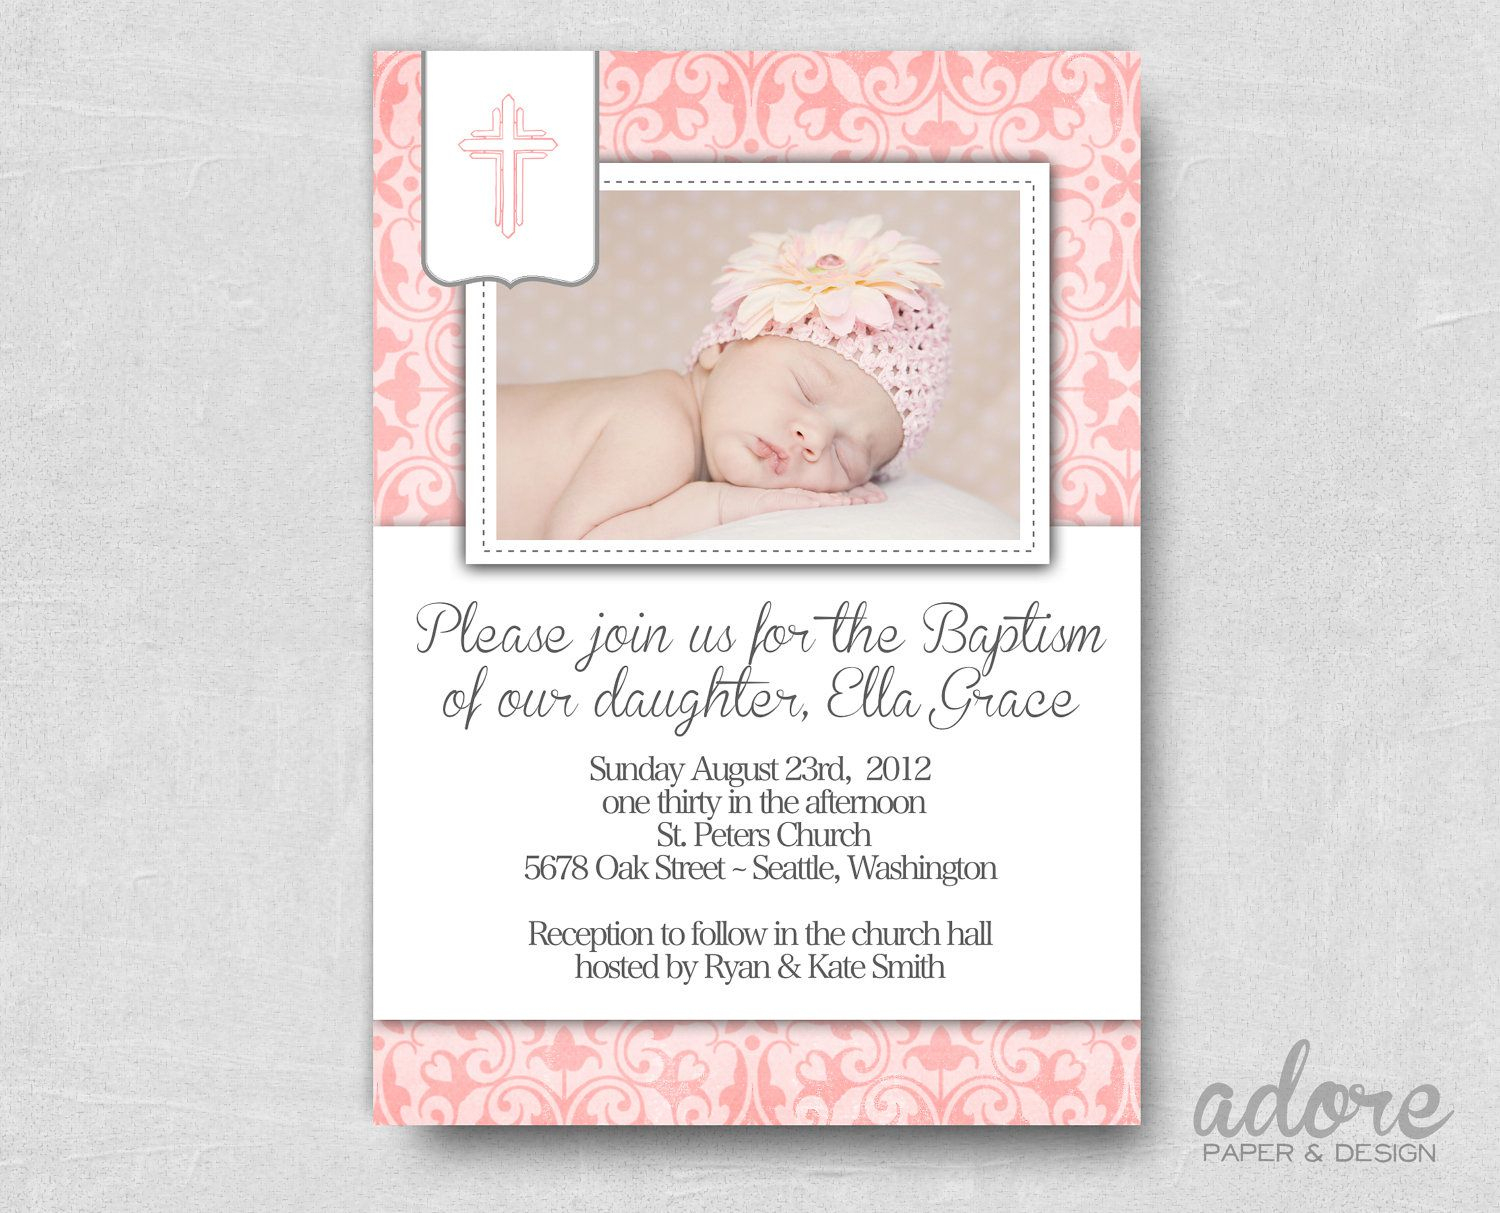 Baptism Invitation : Free Printable Baptism Invitations - Baptism - Free Printable Personalized Baptism Invitations